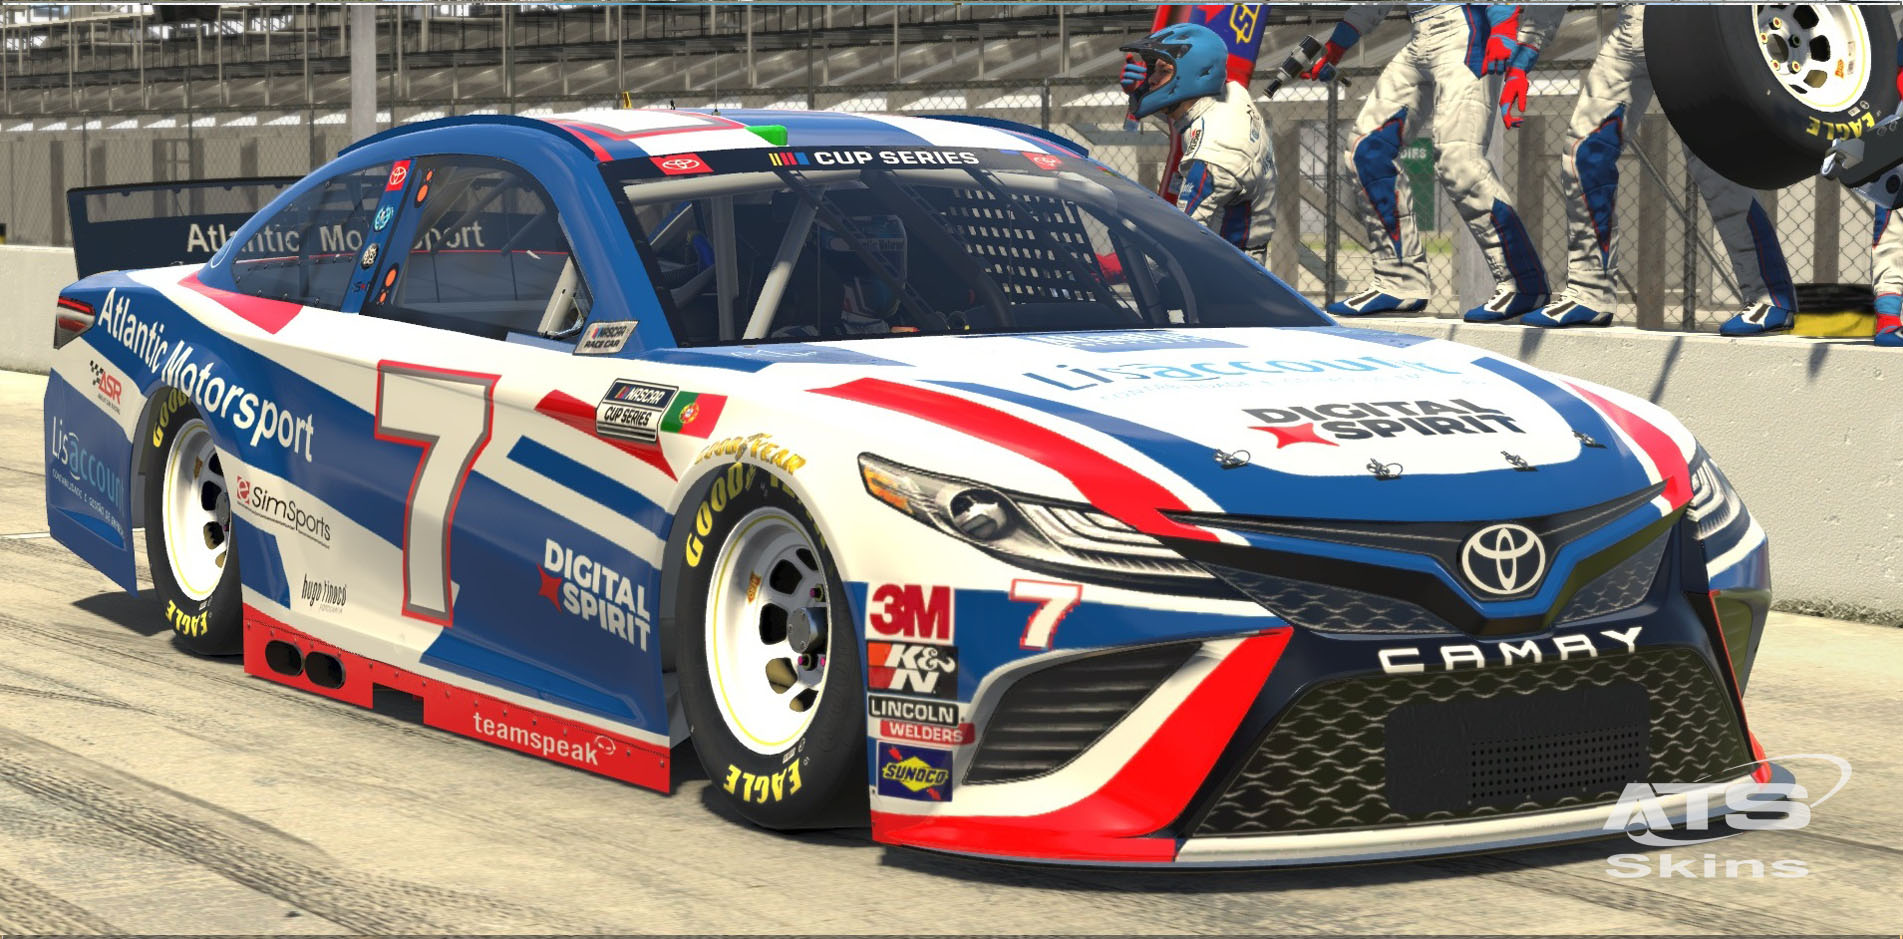 Atlantic Motorsport presents the new NASCAR Toyota Camry Class A Gen 6 for iRacing